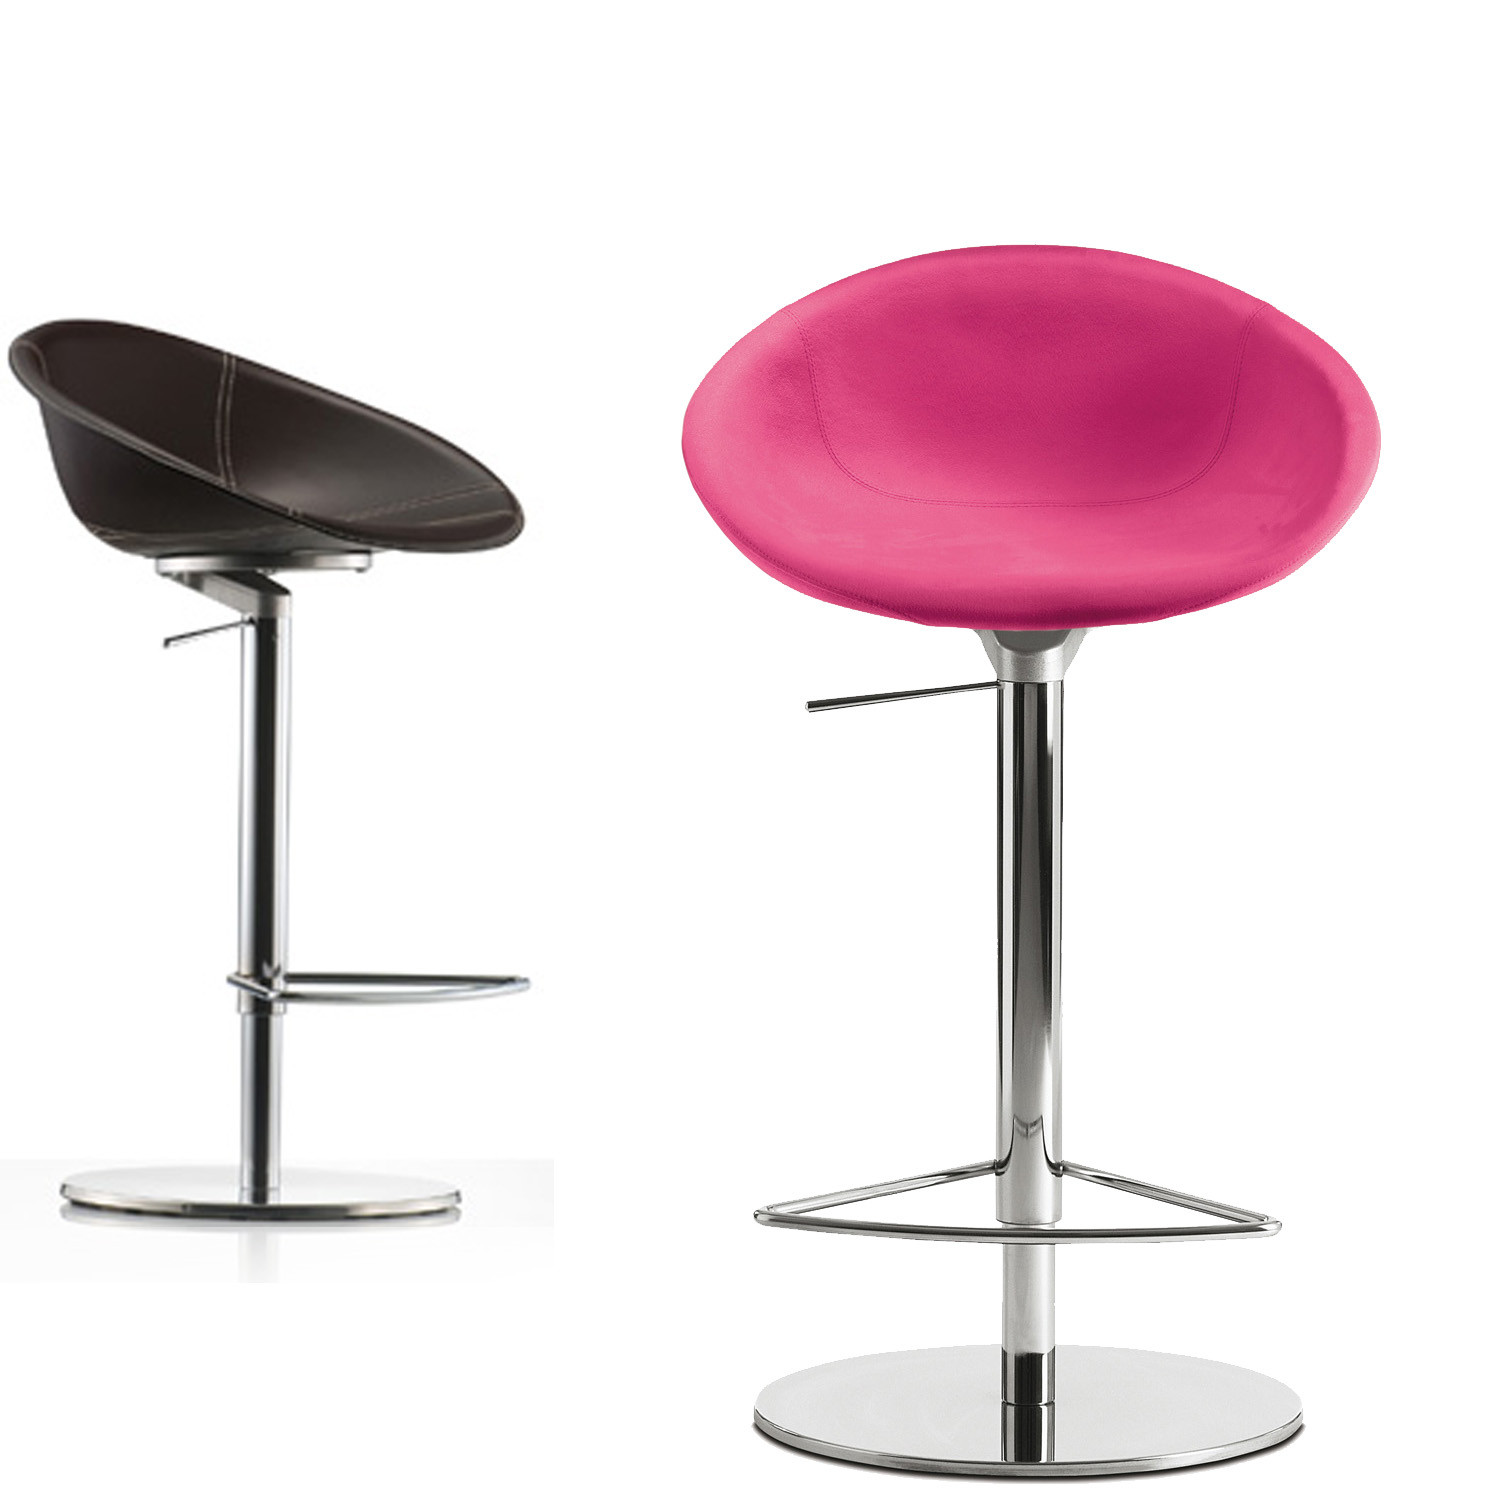 Gliss Bar Stools Modern Bar Stools Apr S Furniture